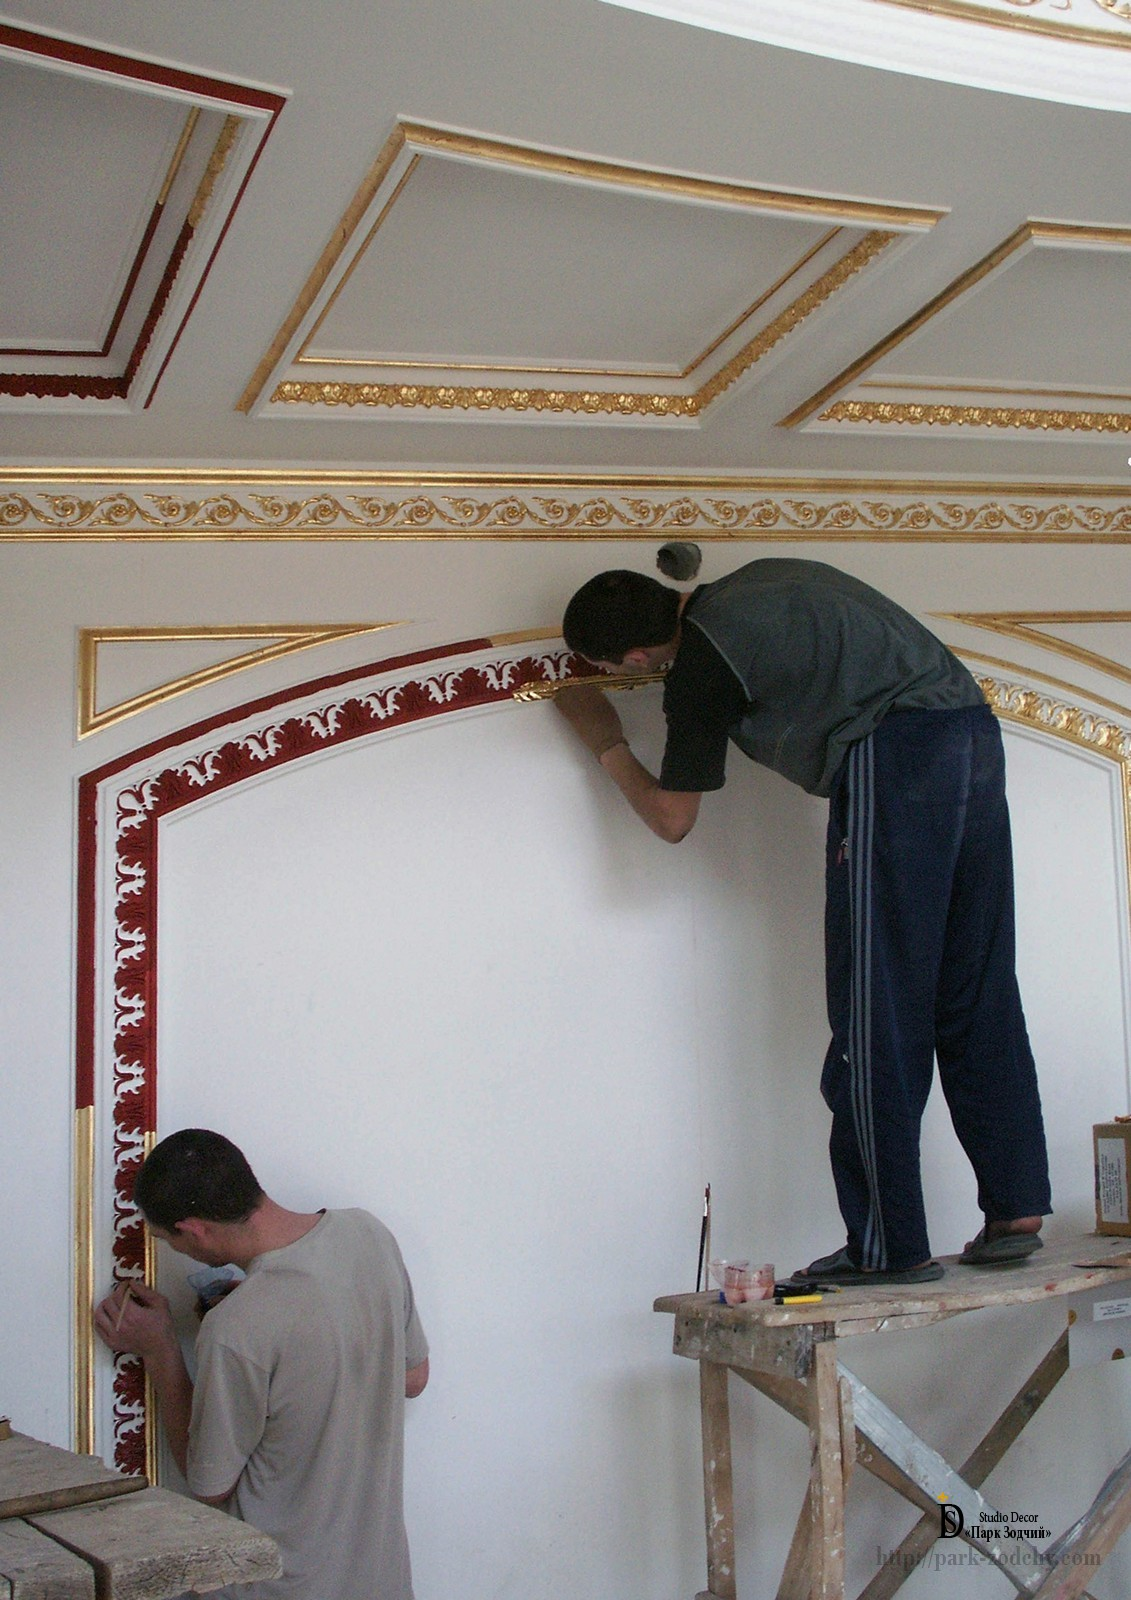 Preparatory work before gilding